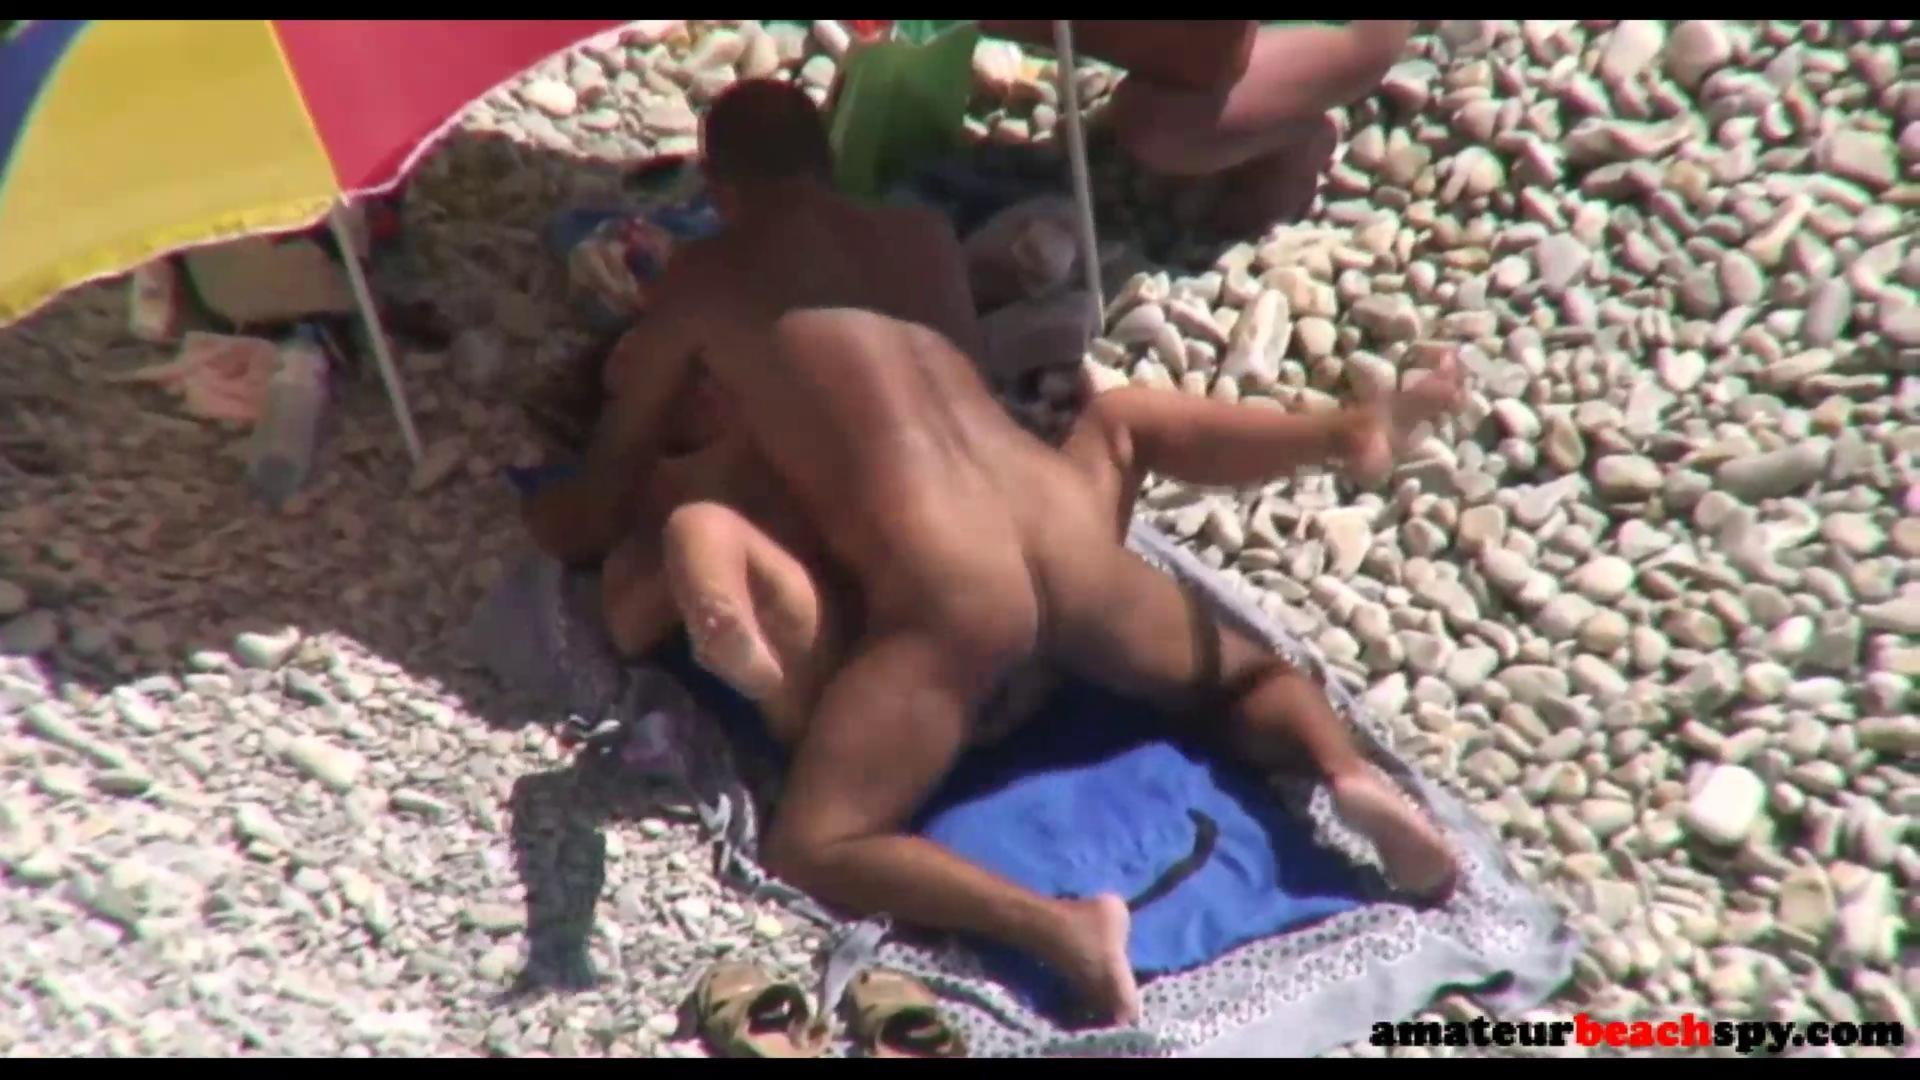 Voyeur nude having beach sex couple